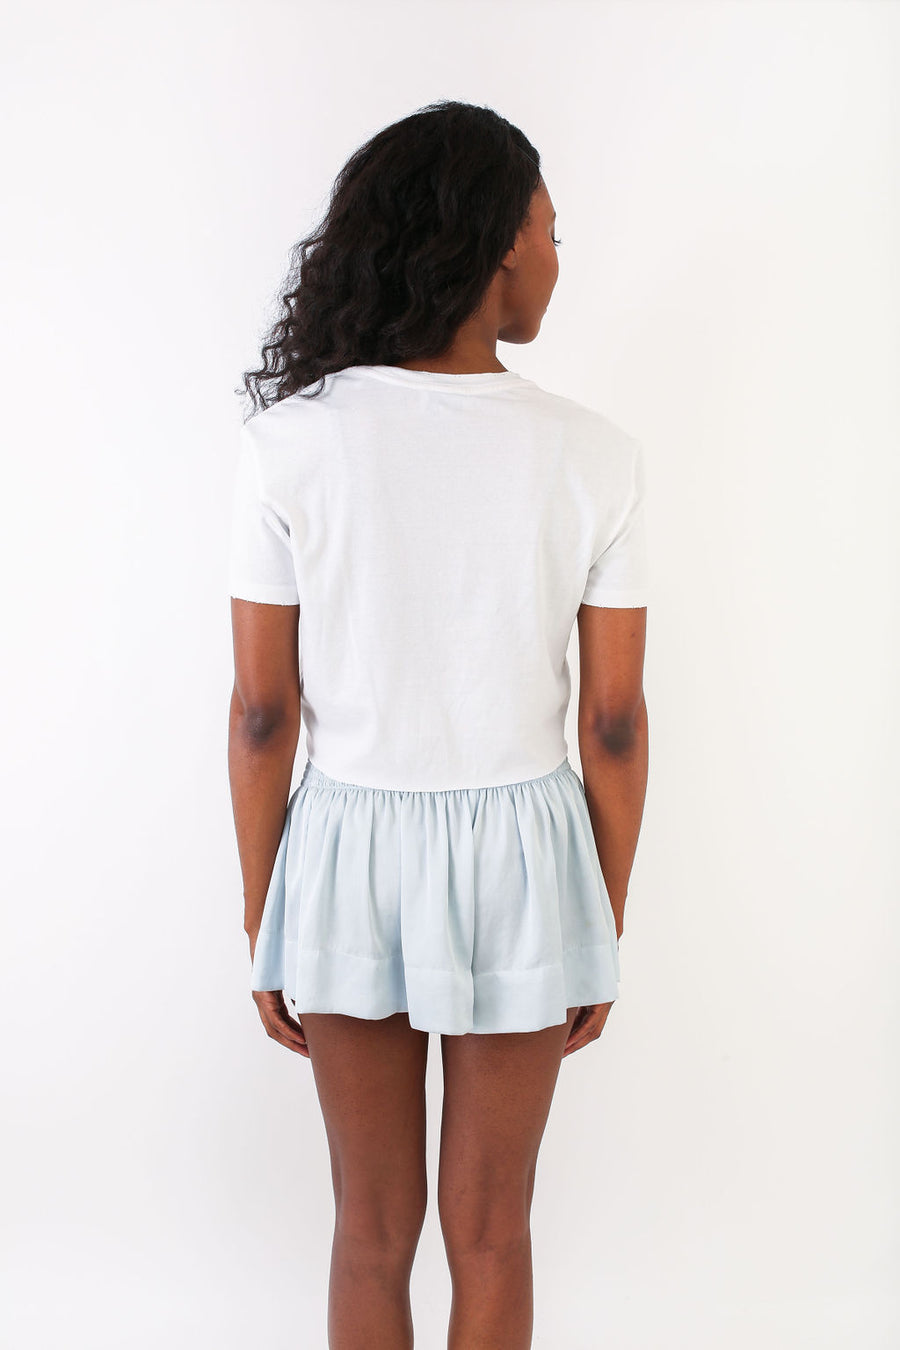 ERICA SKIRT PALE BLUE *LIMITED EDITION*